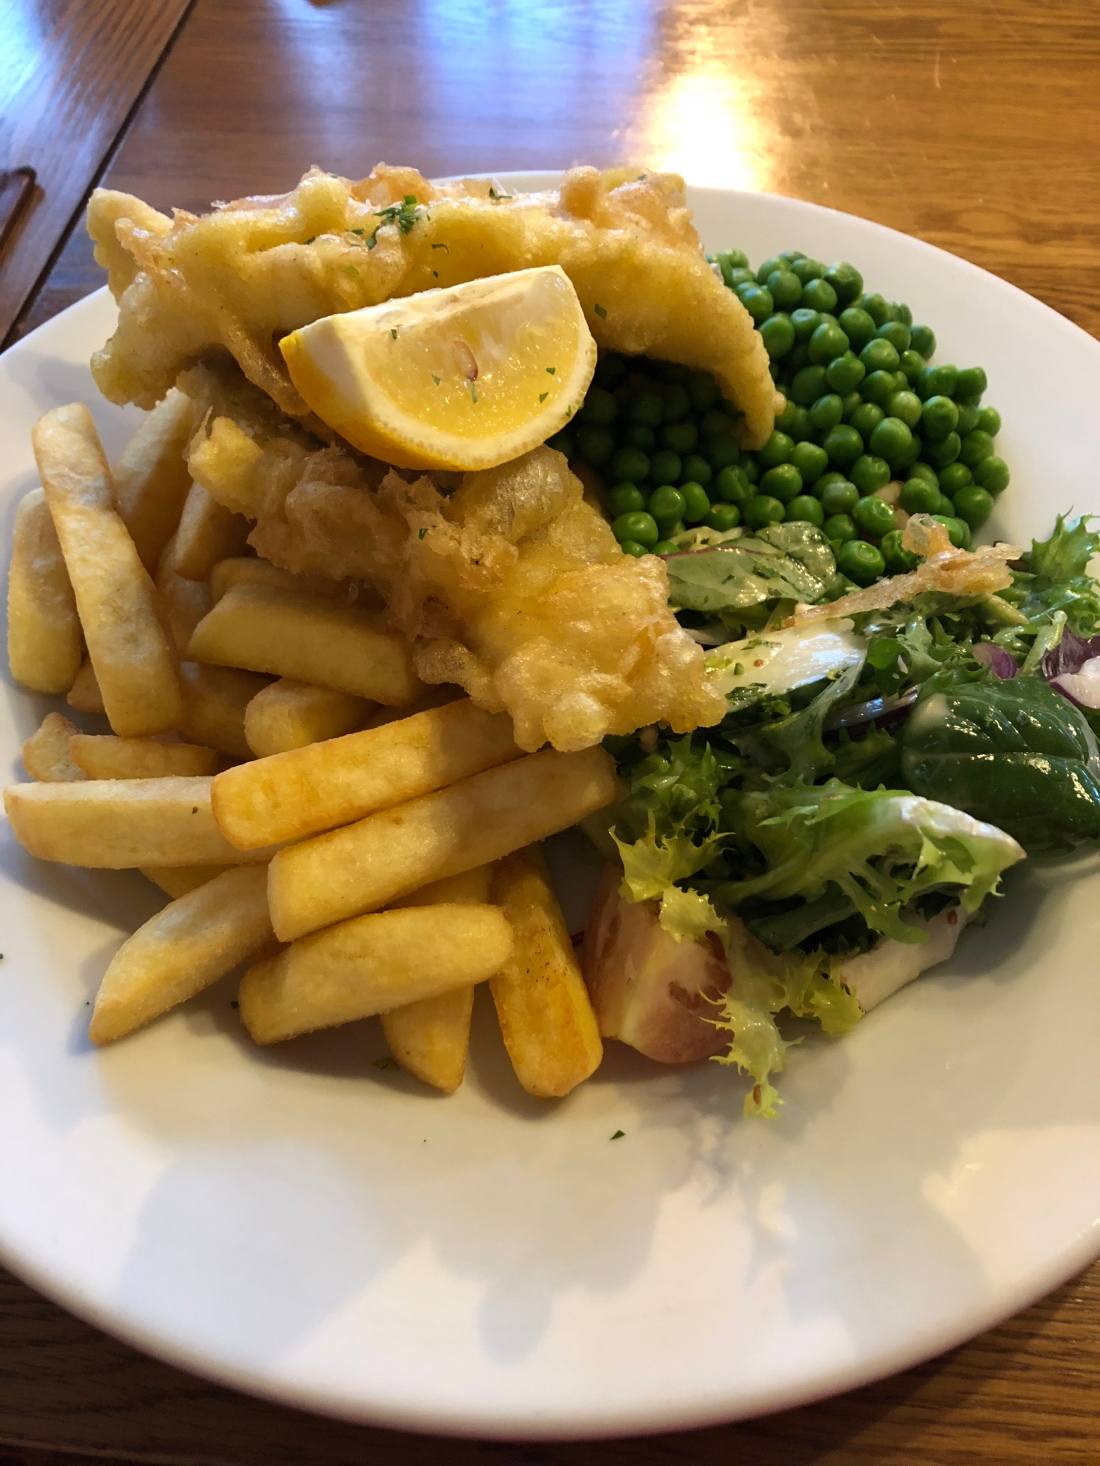 Fish & chips at the Clunaie Inn